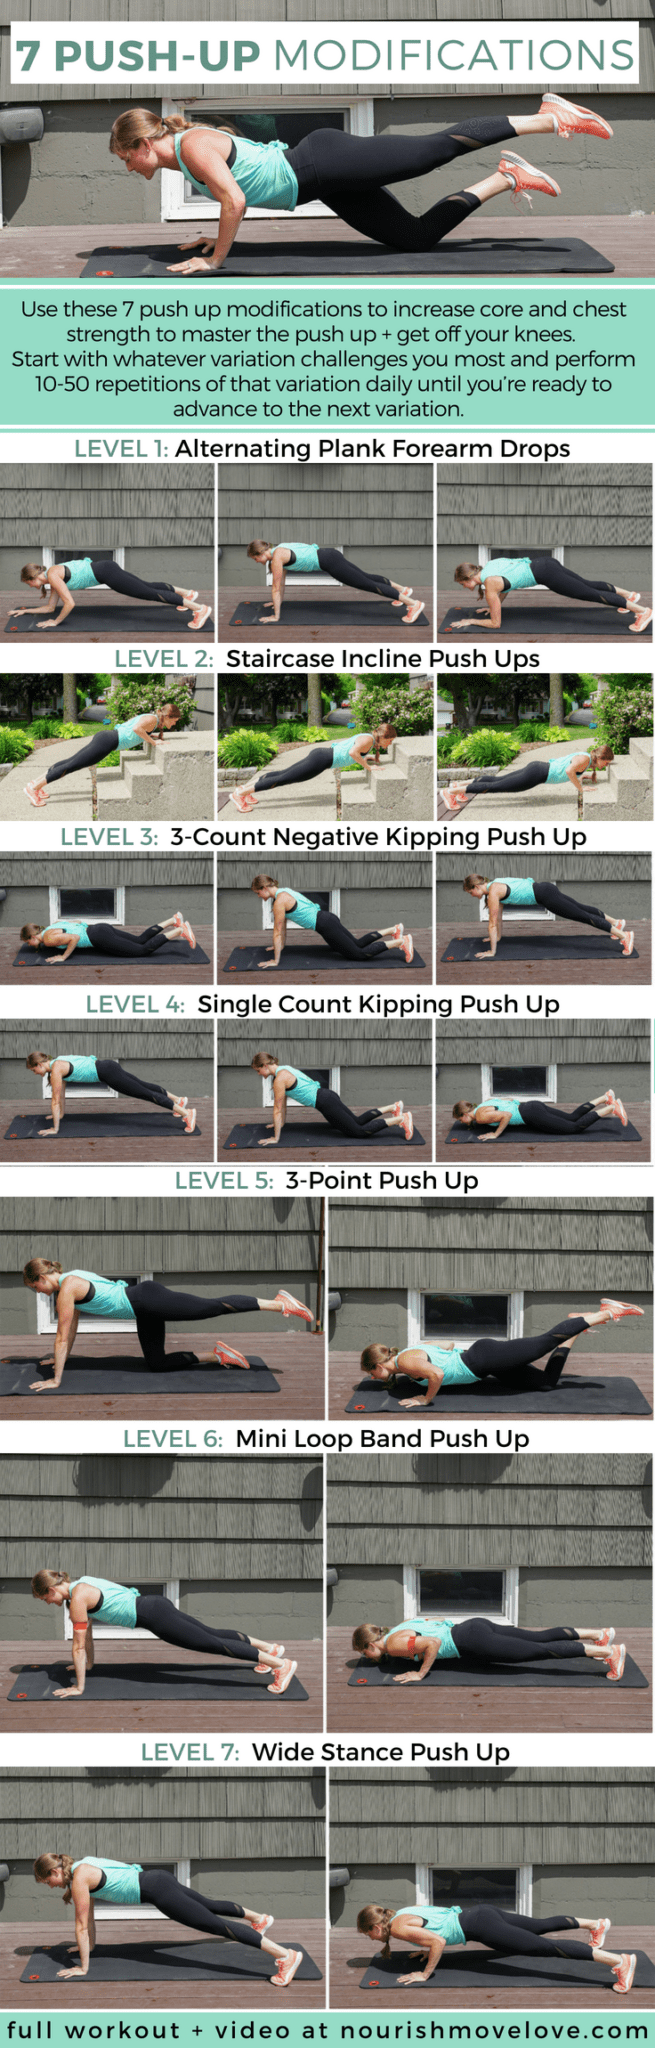 7 Push Up Modifications To Get Off Your Knees Nourish